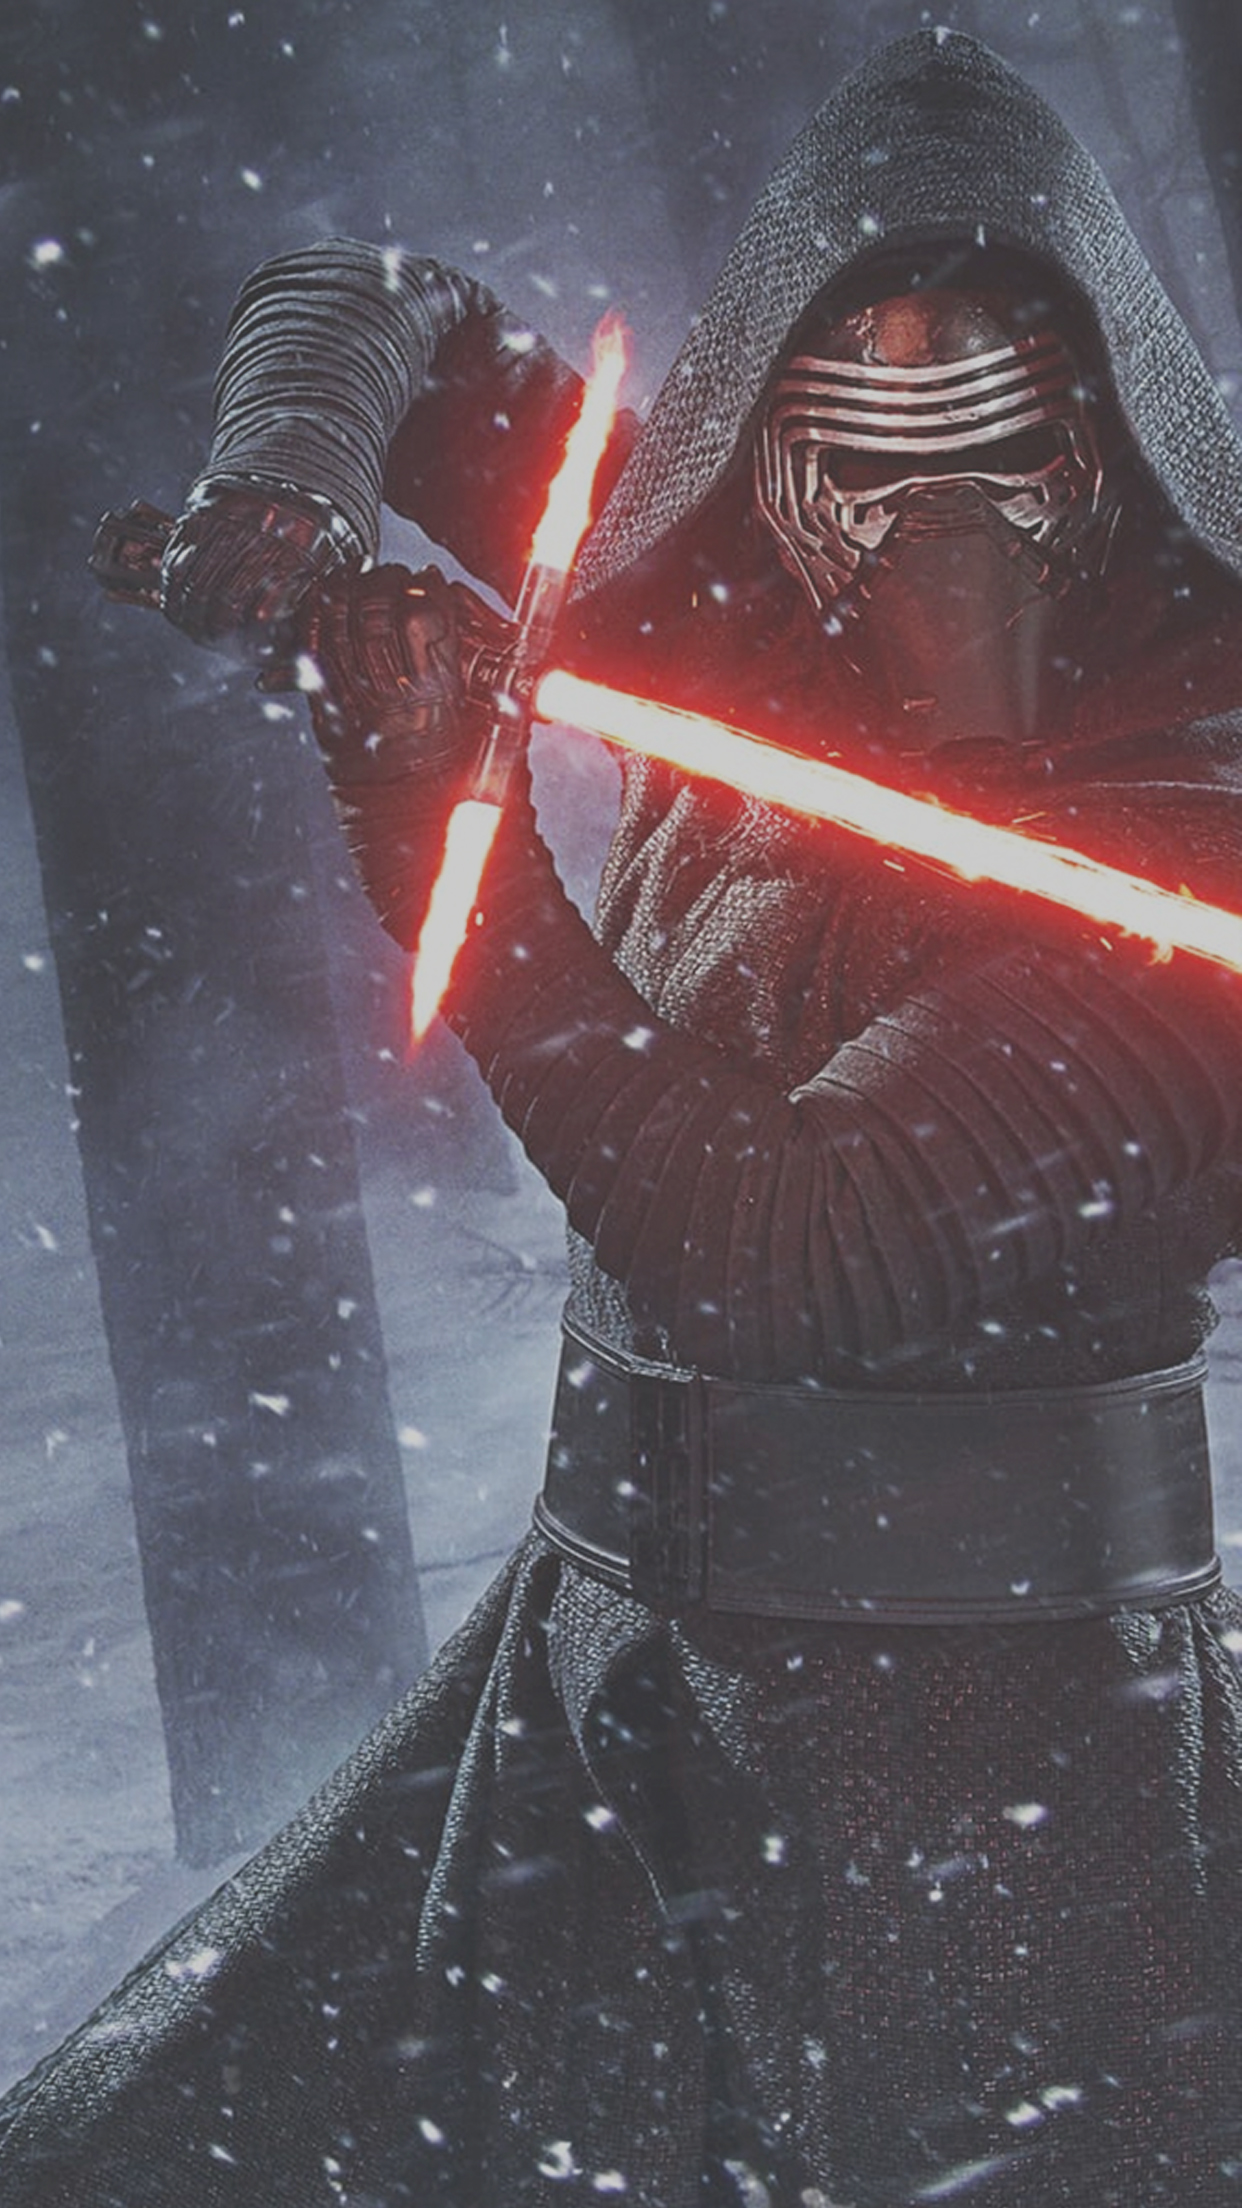 Star Wars The Force Awakens iPhone wallpapers 1242x2208